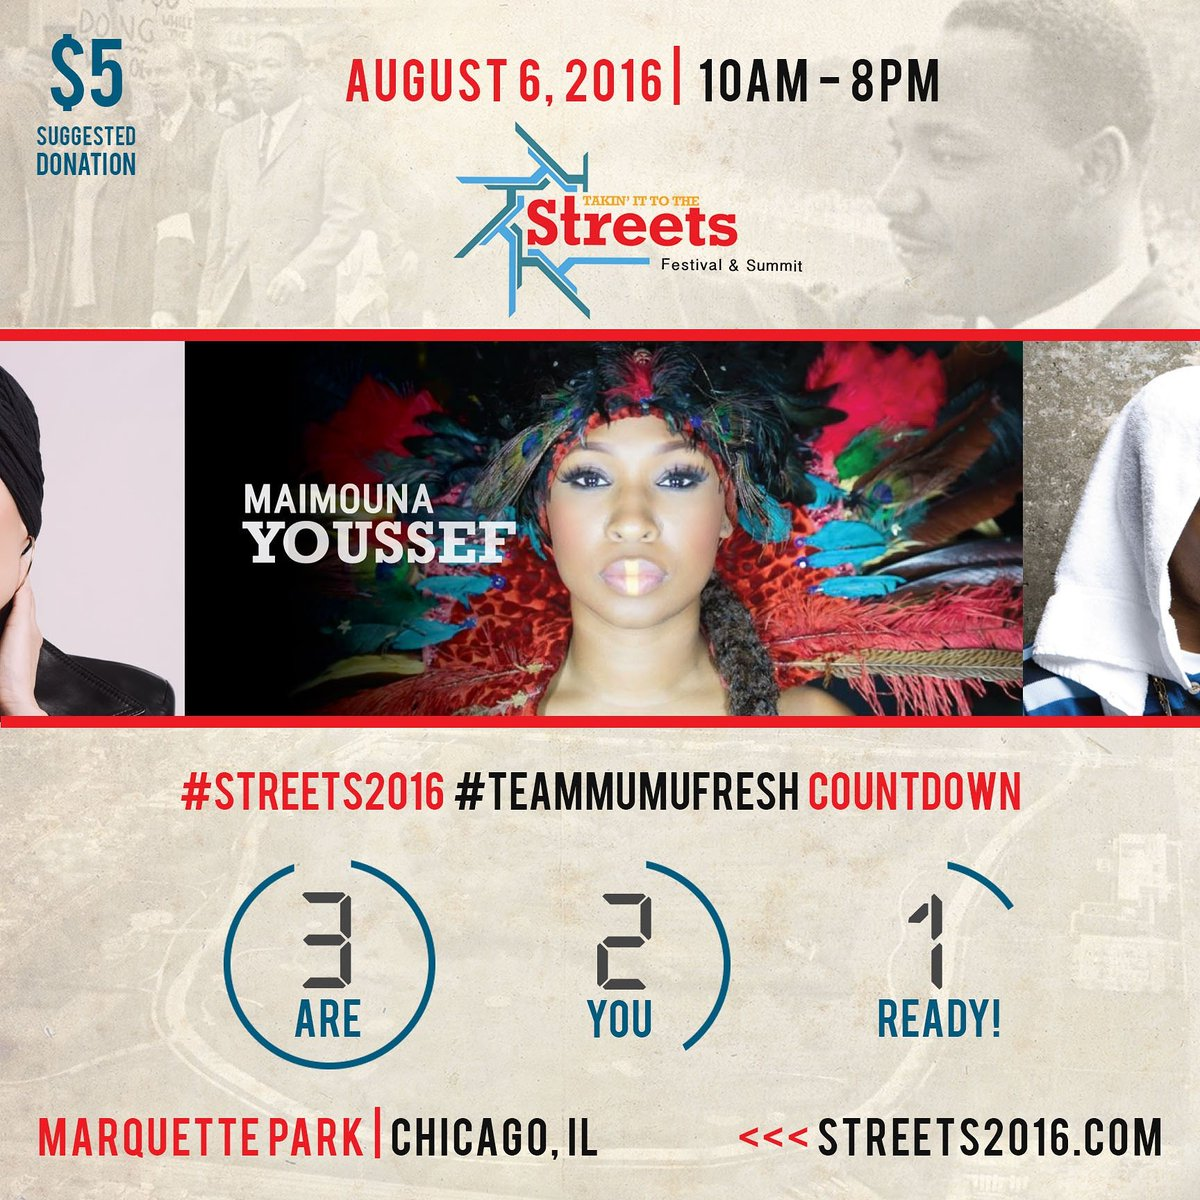 5 days away!! Chicago, you don't want to miss this monumental event #Streets2016 https://t.co/DY0jmz1dI5